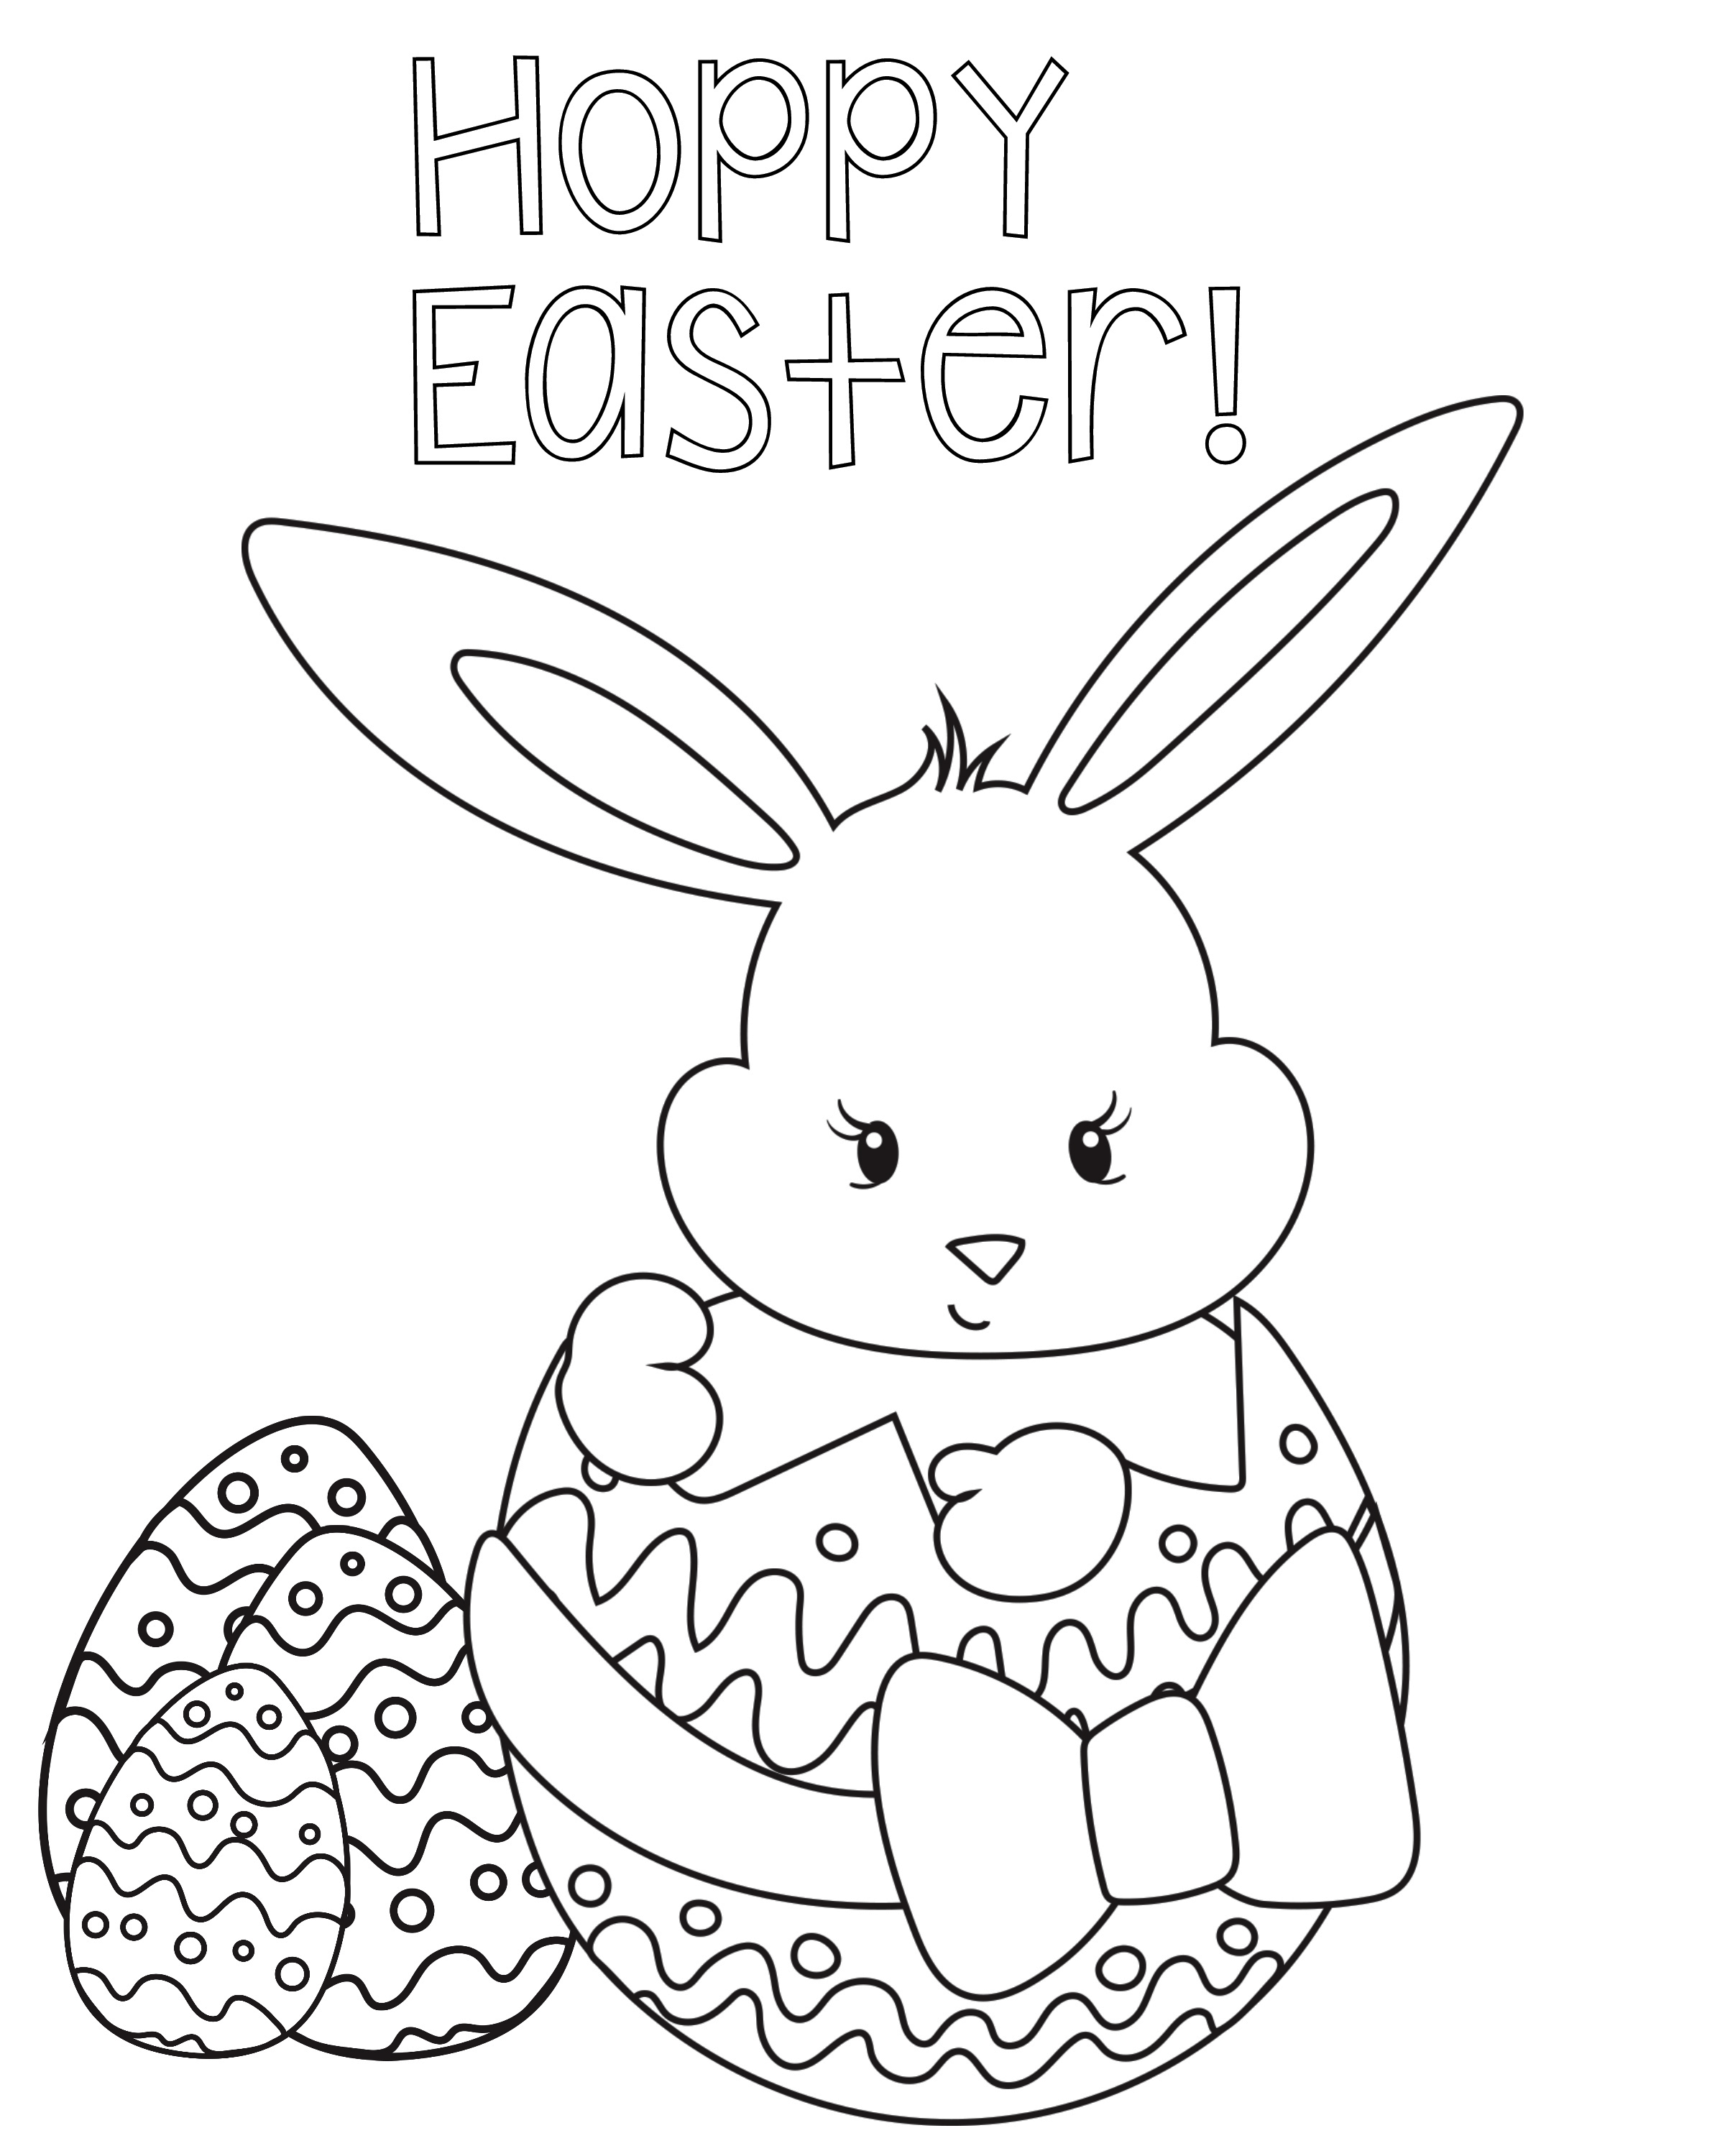 kids easter colouring pages 8 free printable easter coloring pages your kids will love pages easter colouring kids